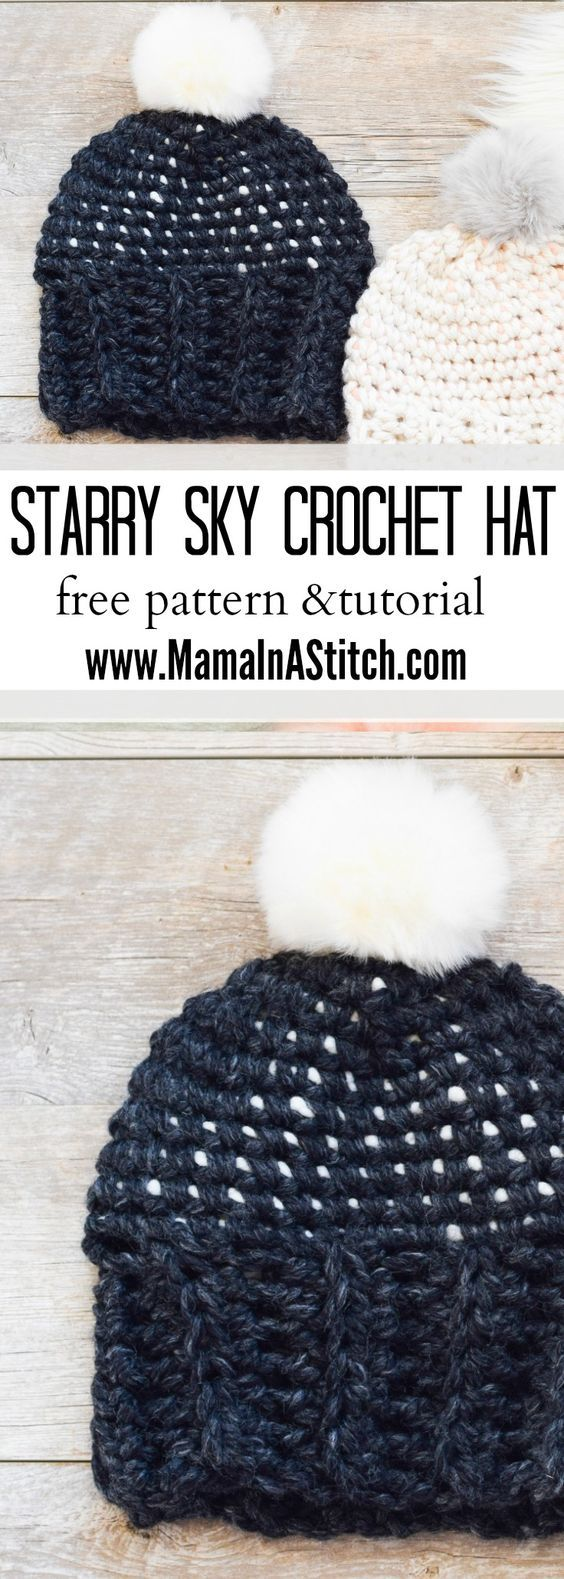 Super easy, free crochet \